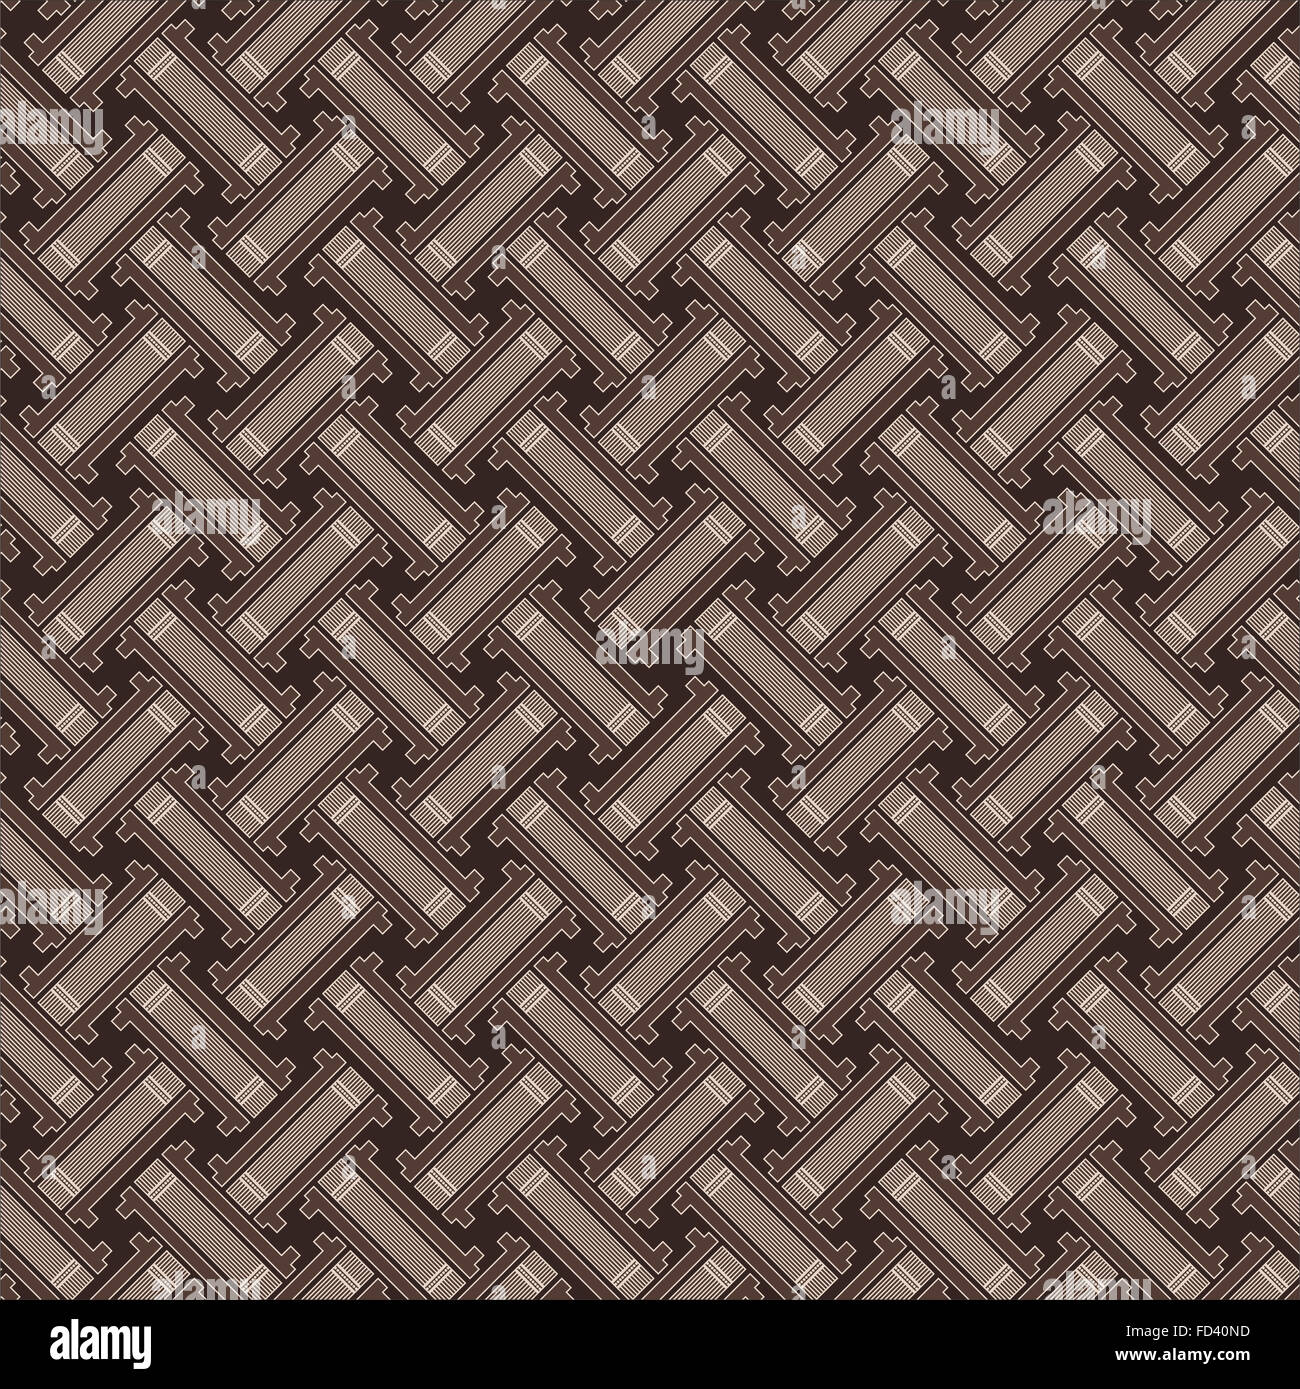 Batik Motif Stock Photos Amp Batik Motif Stock Images Alamy